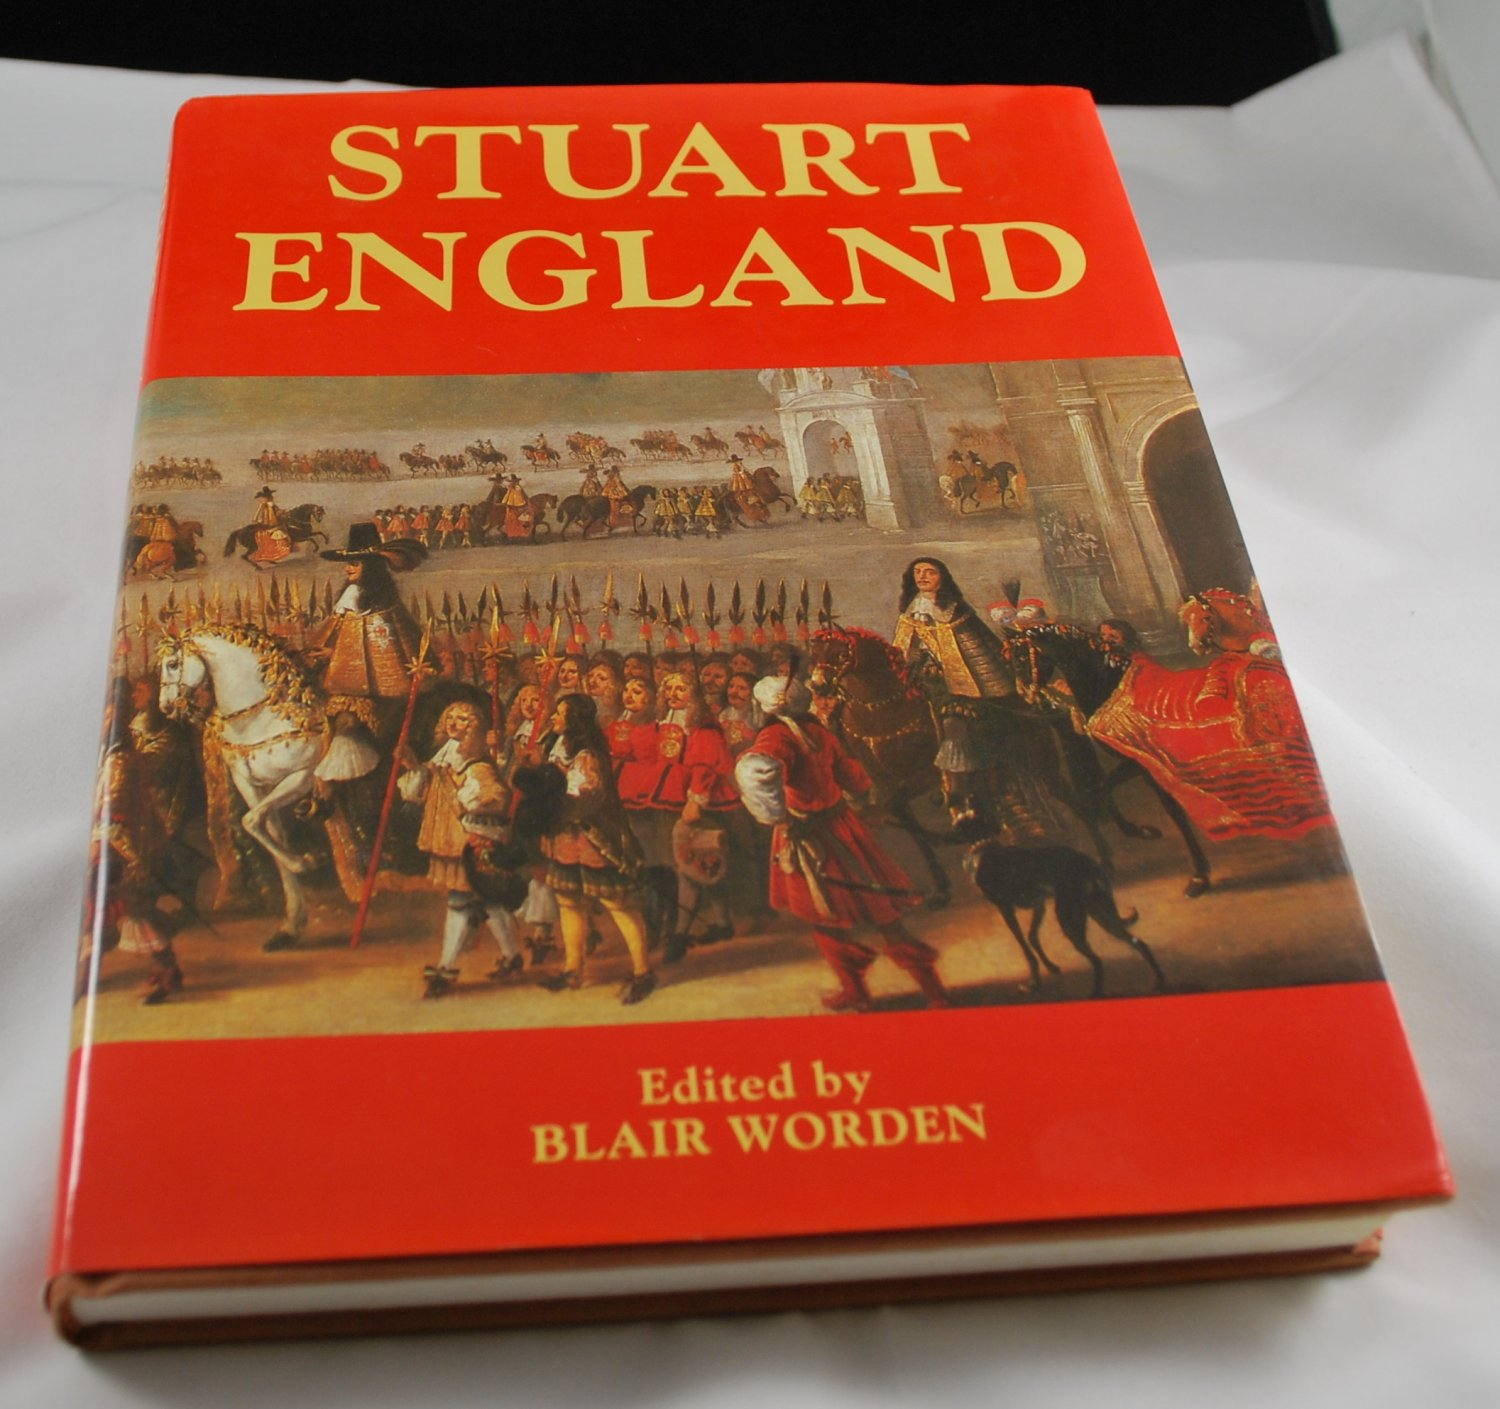 Stuart England HB History Book Edited by Blair Worden